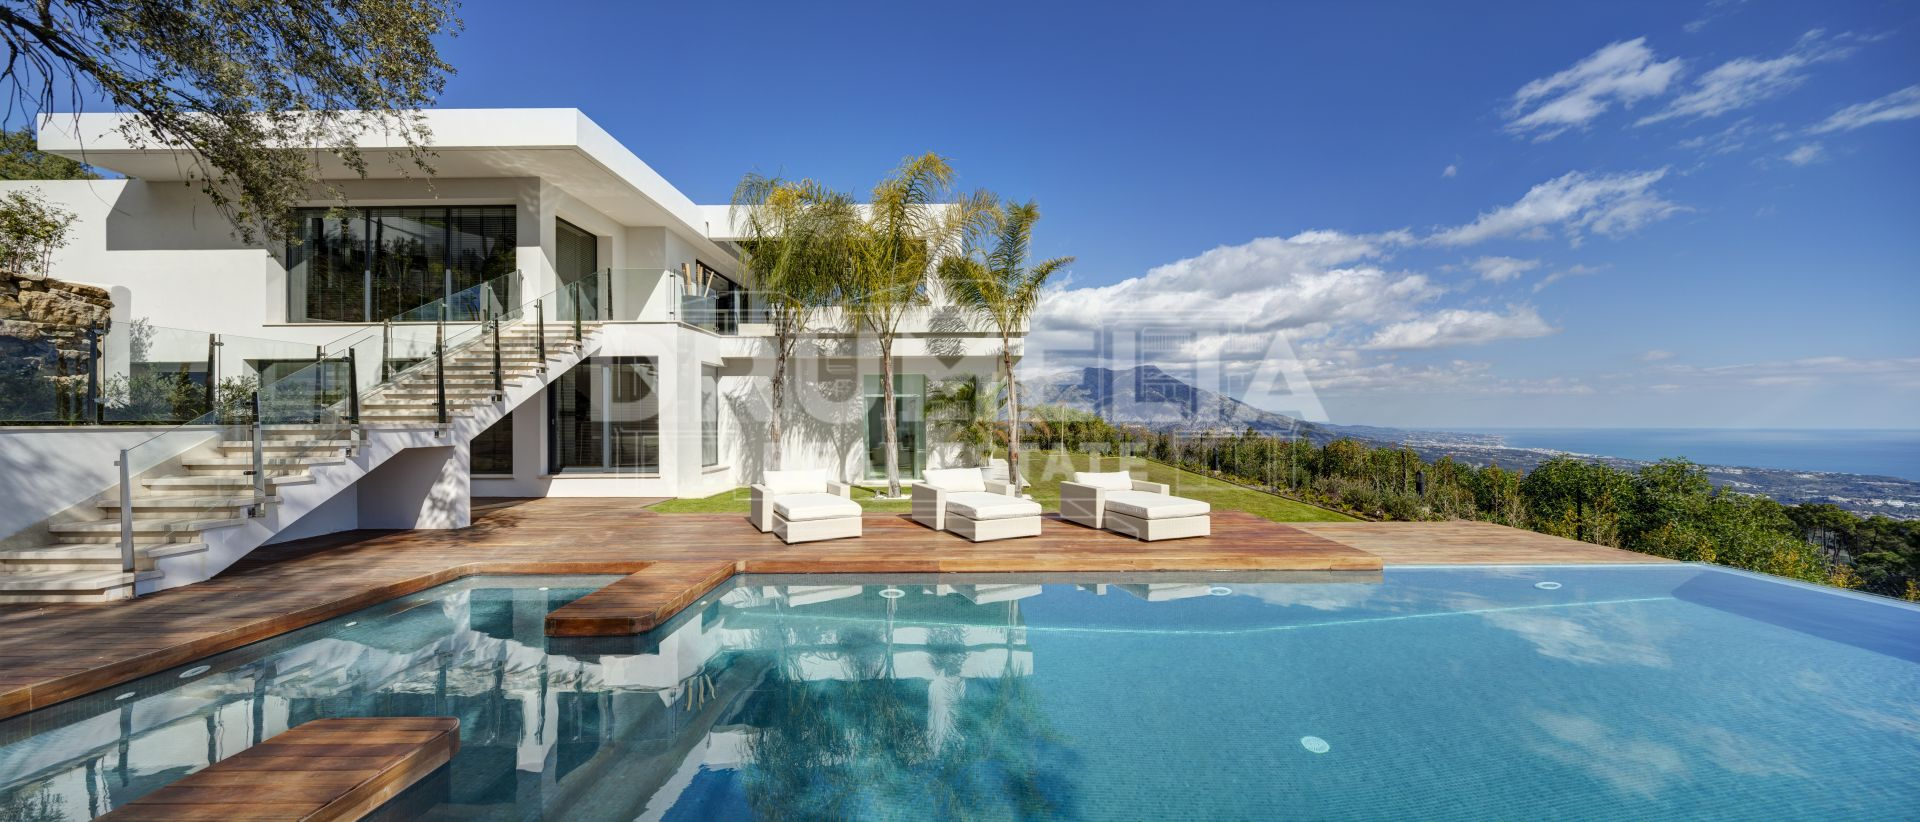 Benahavis, Stunning Contemporary Villa in La Zagaleta